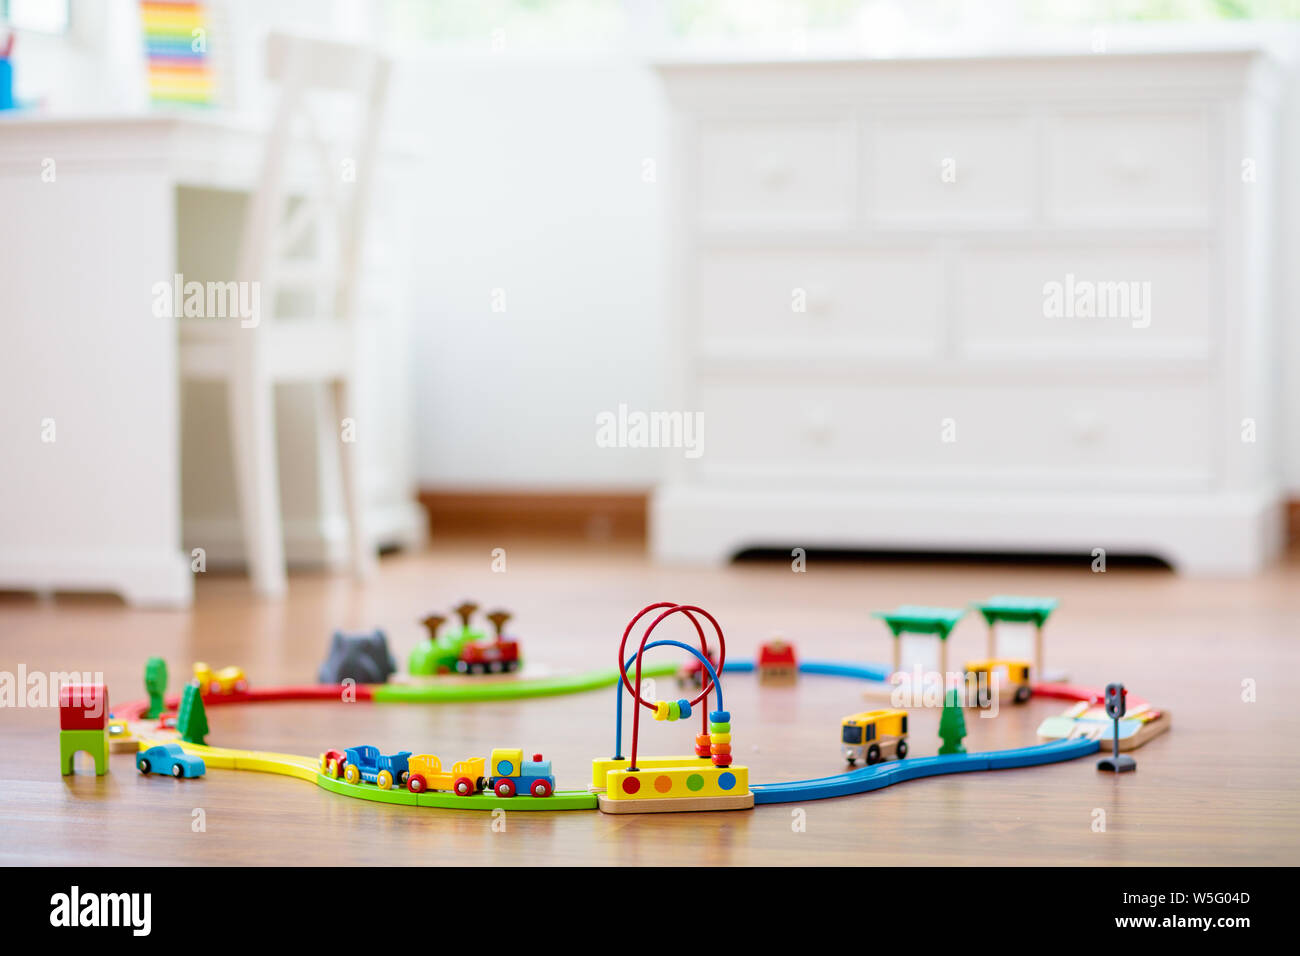 Kids Room With Wooden Railway And Train Rail Road Toy For Children